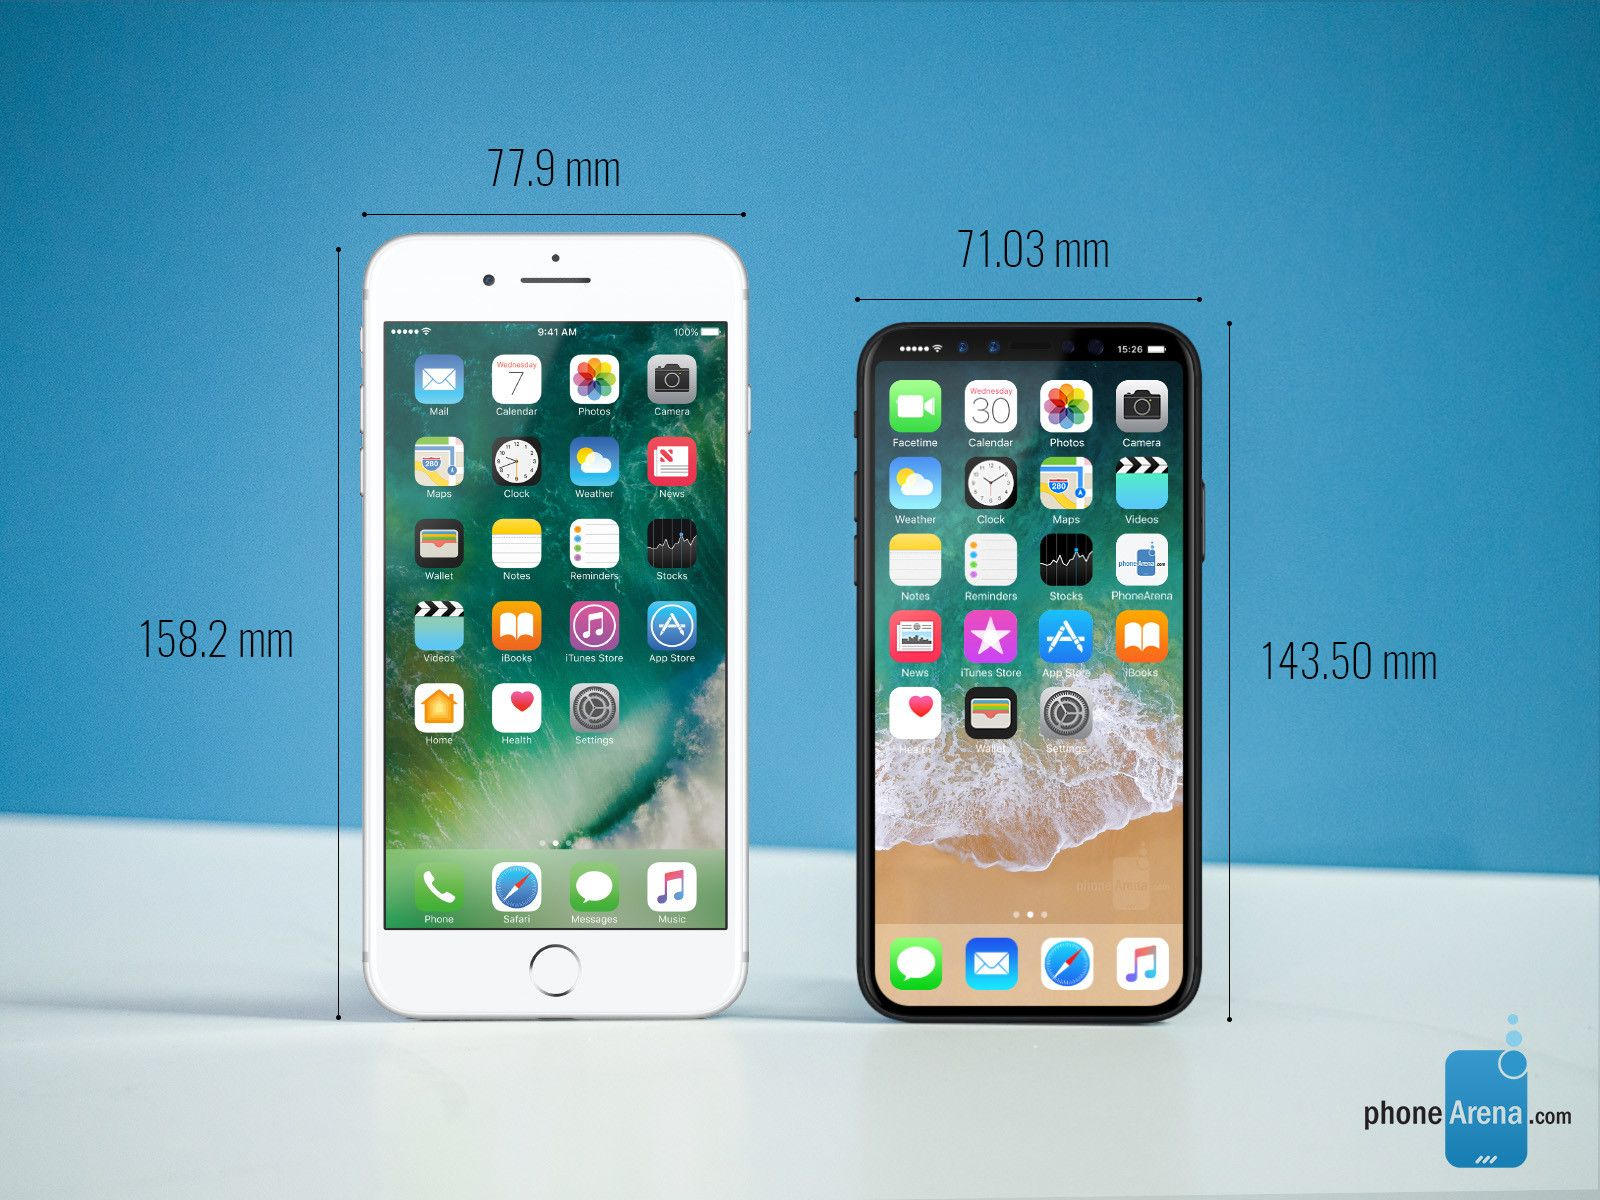 compare iphone models apple iphone 7 plus vs apple iphone 8 size comparison jpg 1600